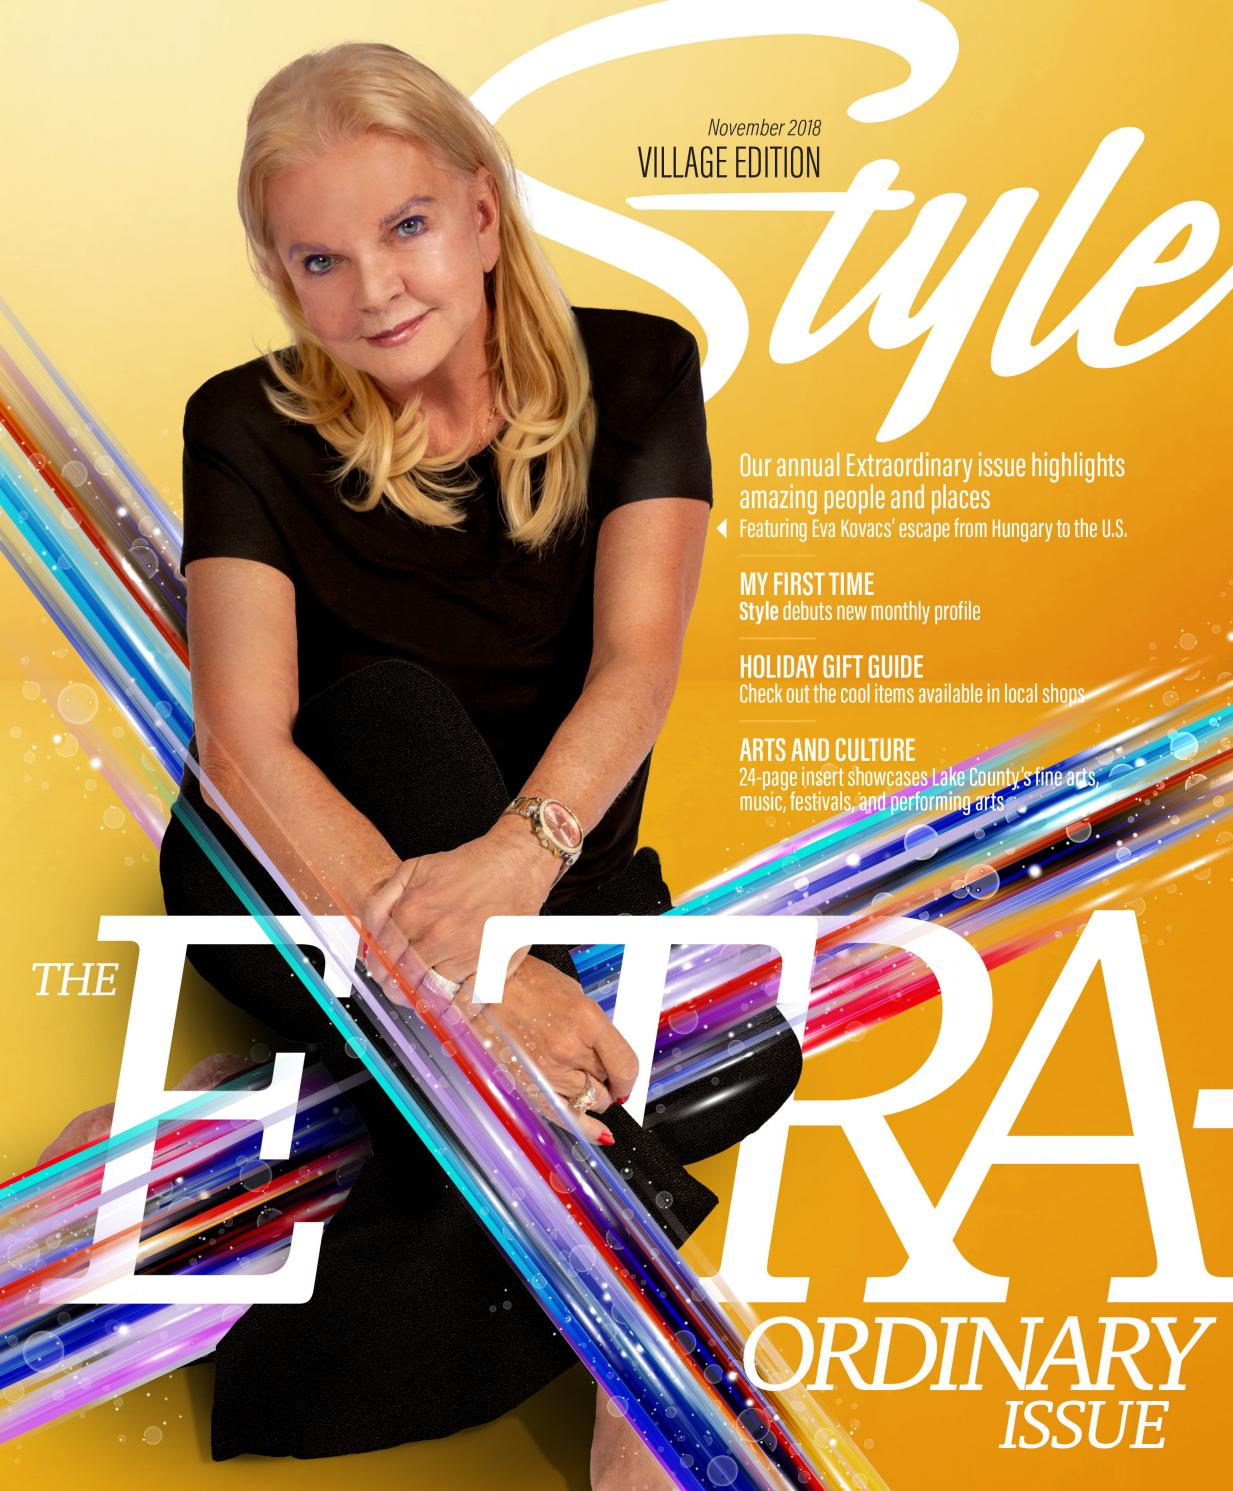 d01b3a65 STYLE Magazine, Village Edition, November 2018 by Akers Media Group - issuu